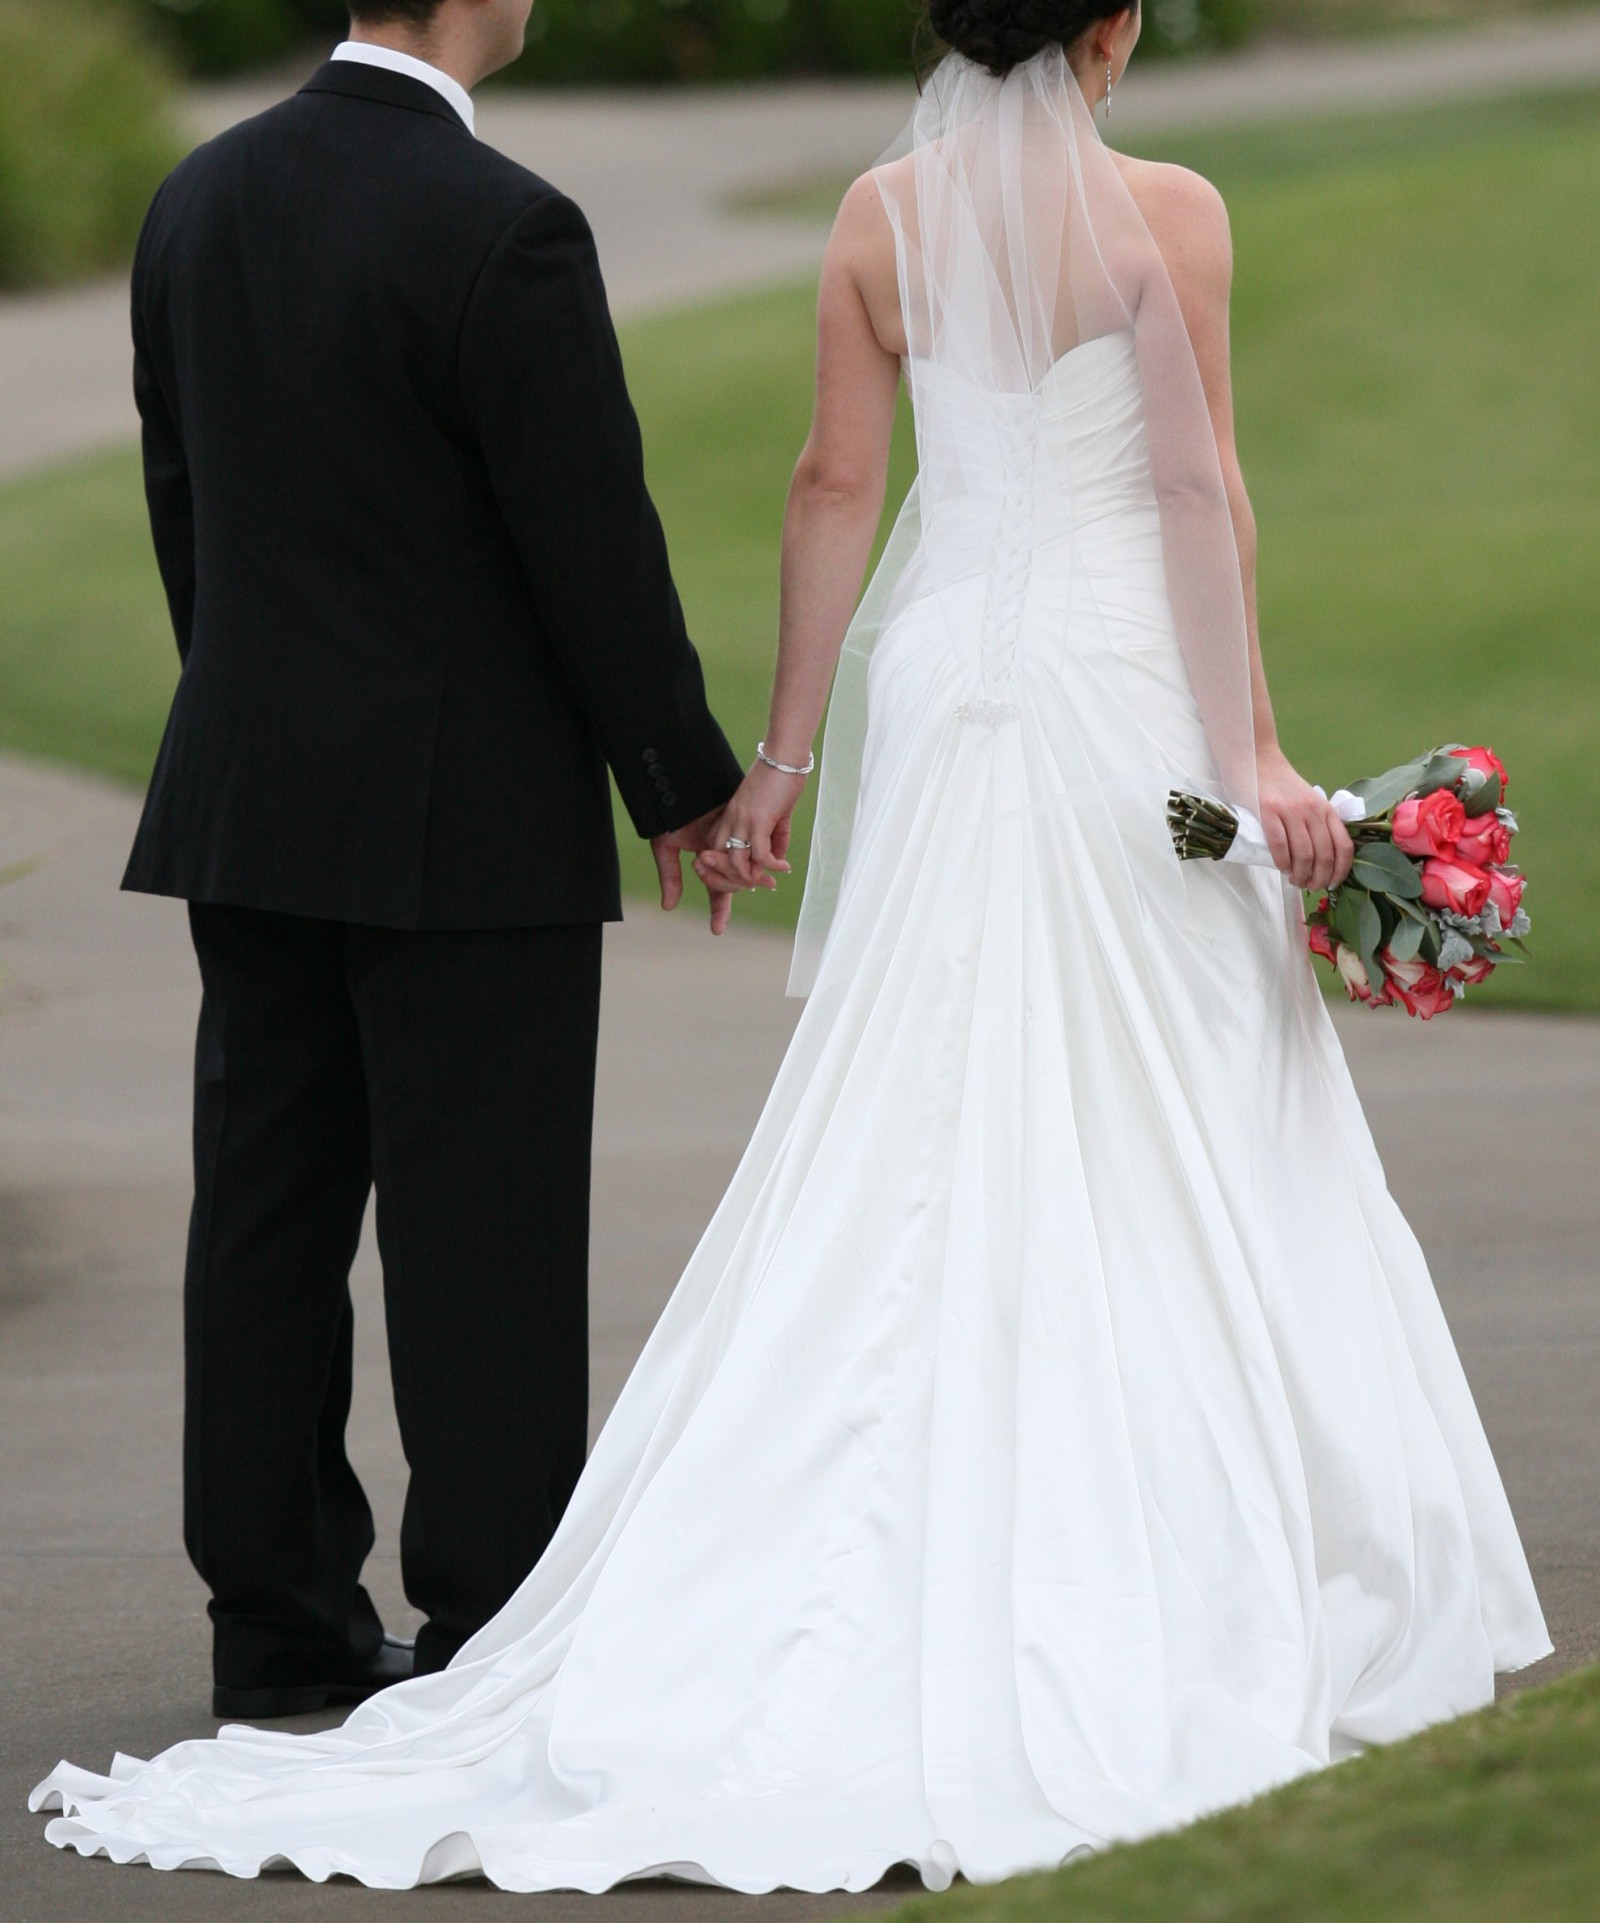 Second Hand Wedding Gown: Maggie Sottero Second Hand Wedding Dress On Sale 88% Off